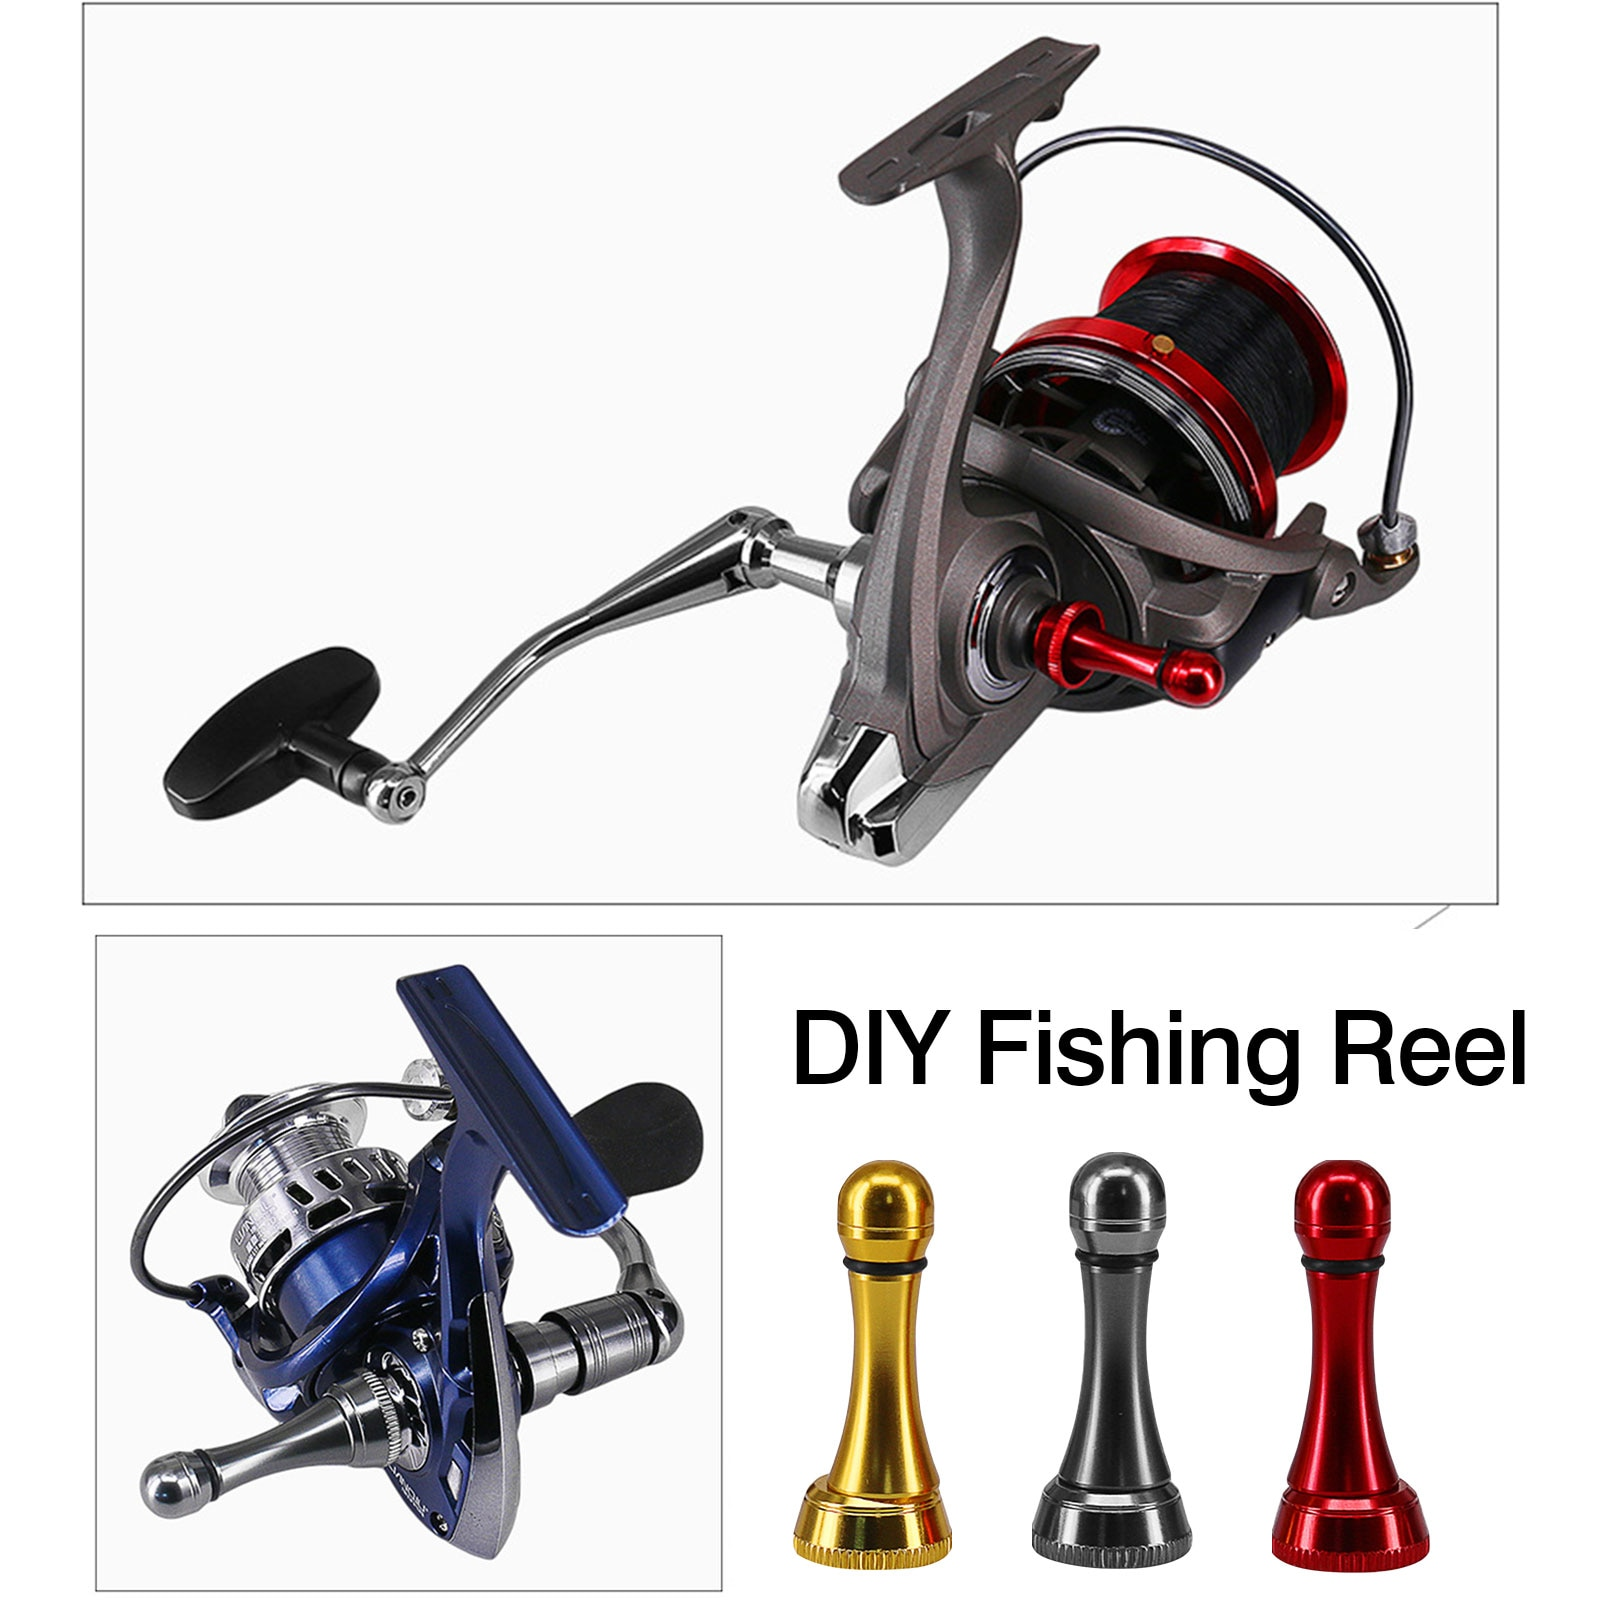 DIY fishing reel anti-collision aluminum alloy balance pole durable handle replacement and repair fishing reel accessories #